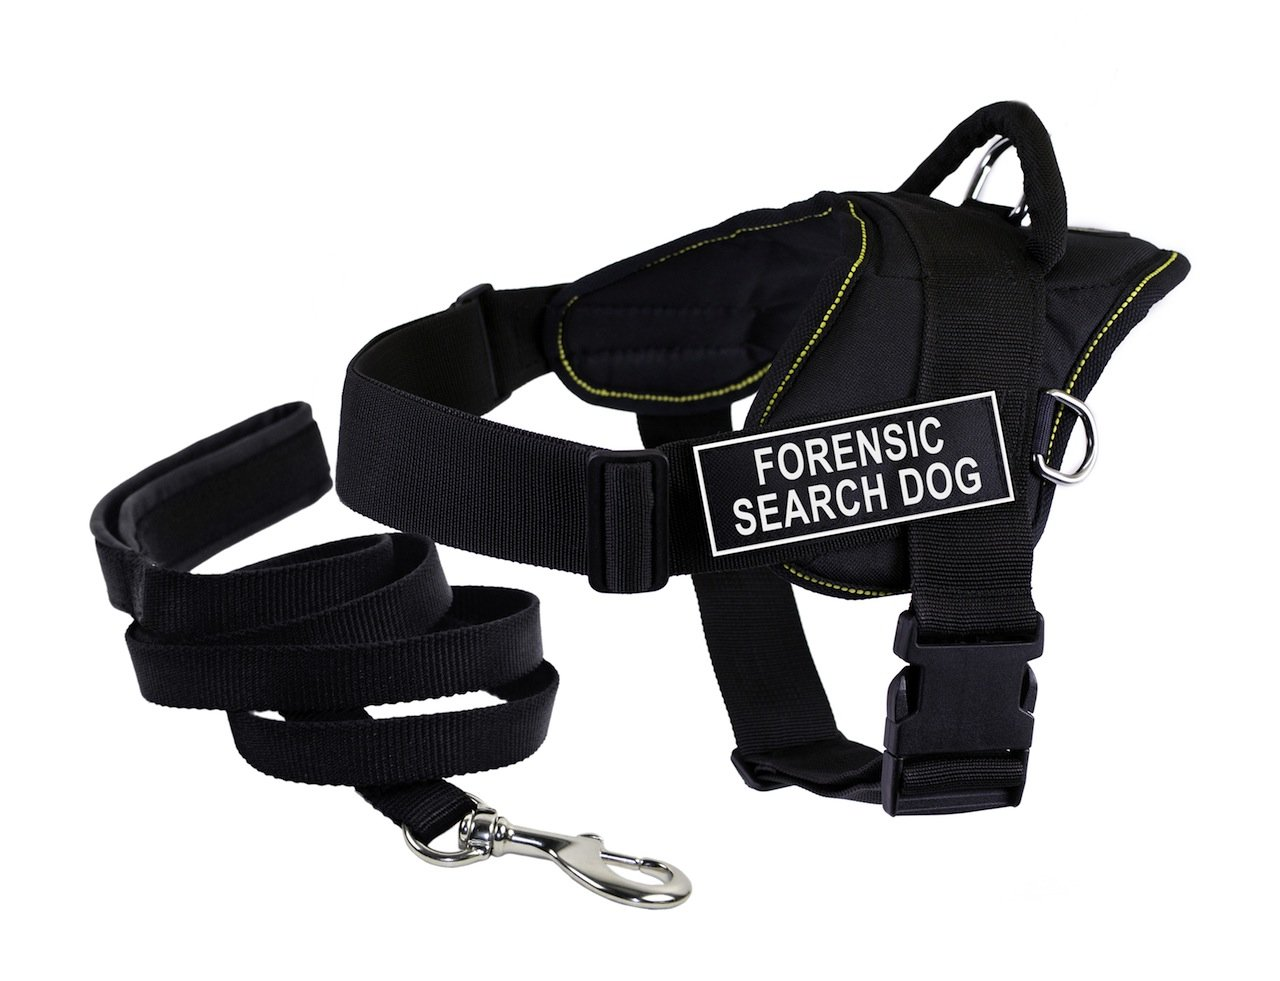 Dean & Tyler's DT Fun FORENSIC SEARCH DOG Harness, Medium, with 6 ft Padded Puppy Leash.